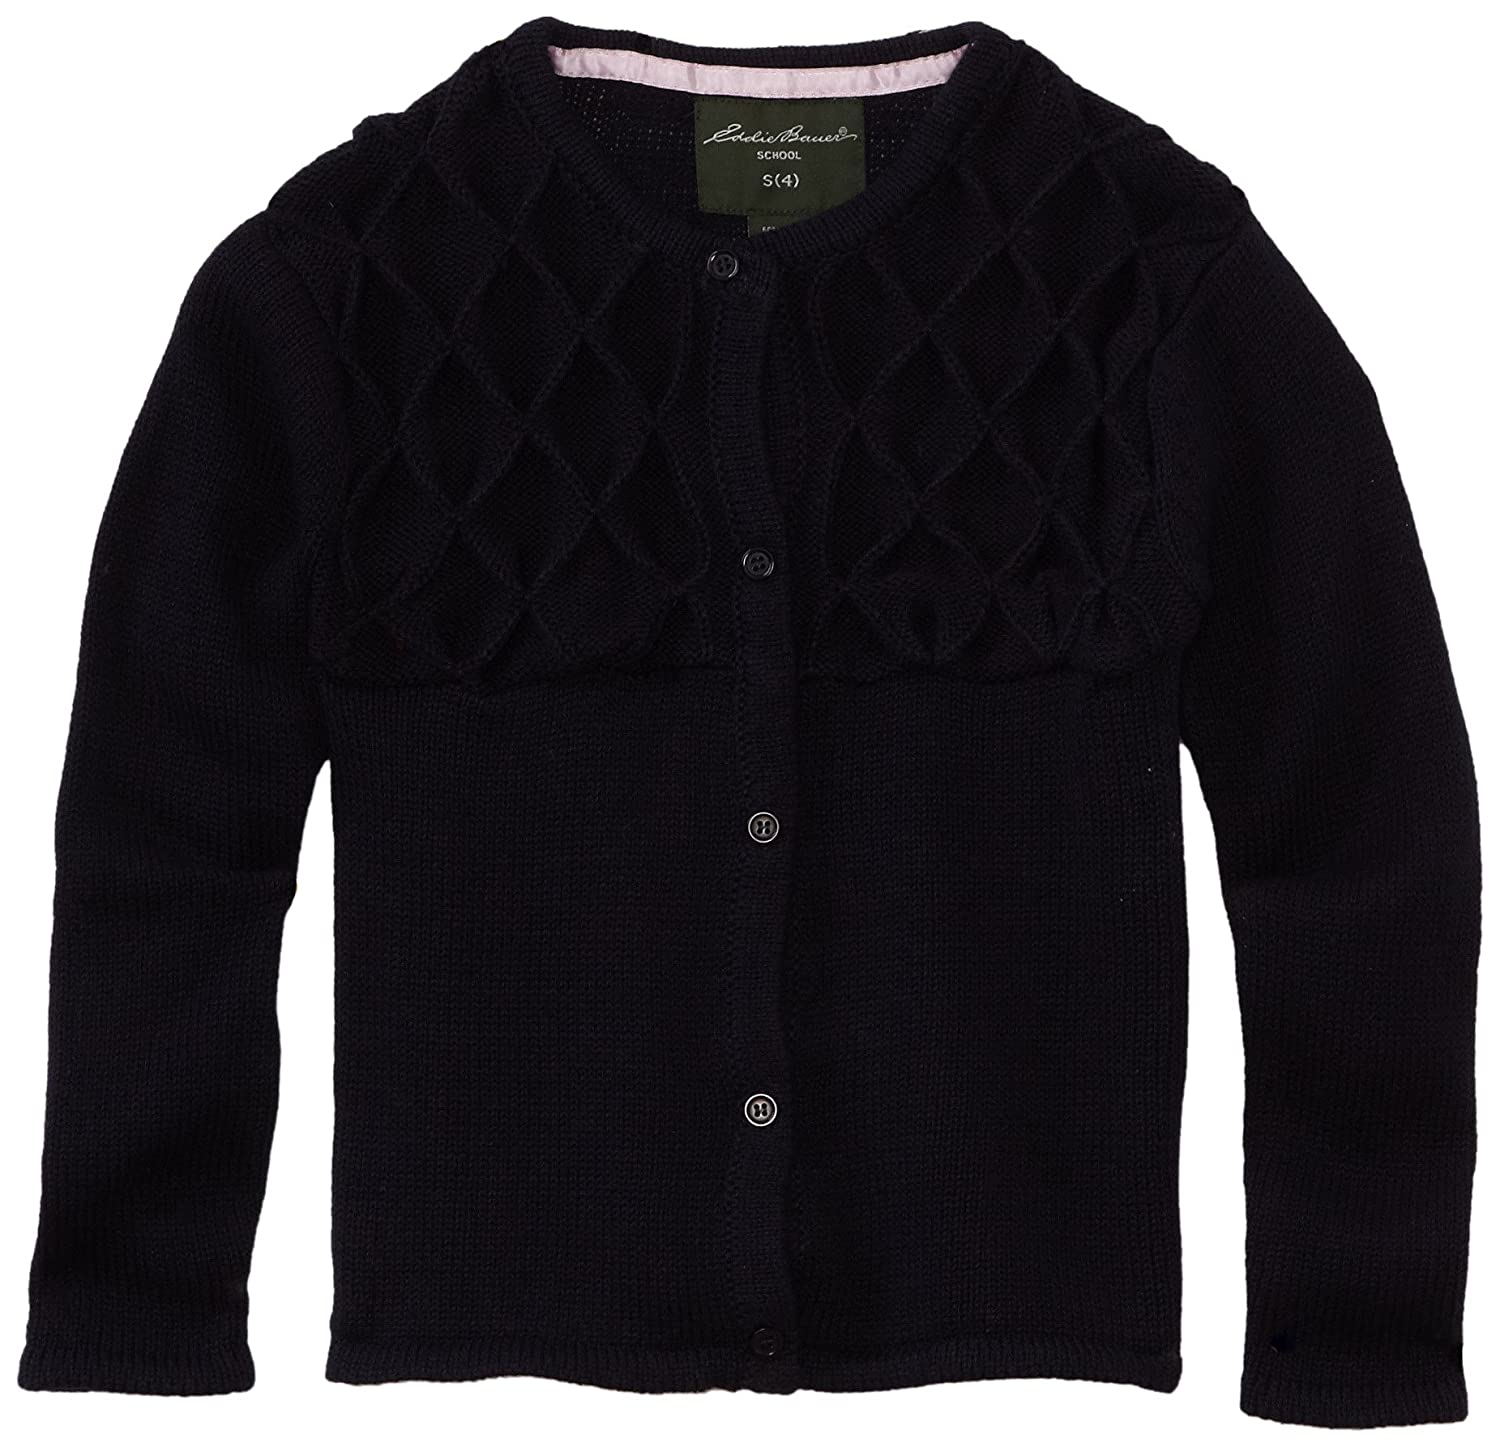 More Styles Available Eddie Bauer Girls Little Sweater